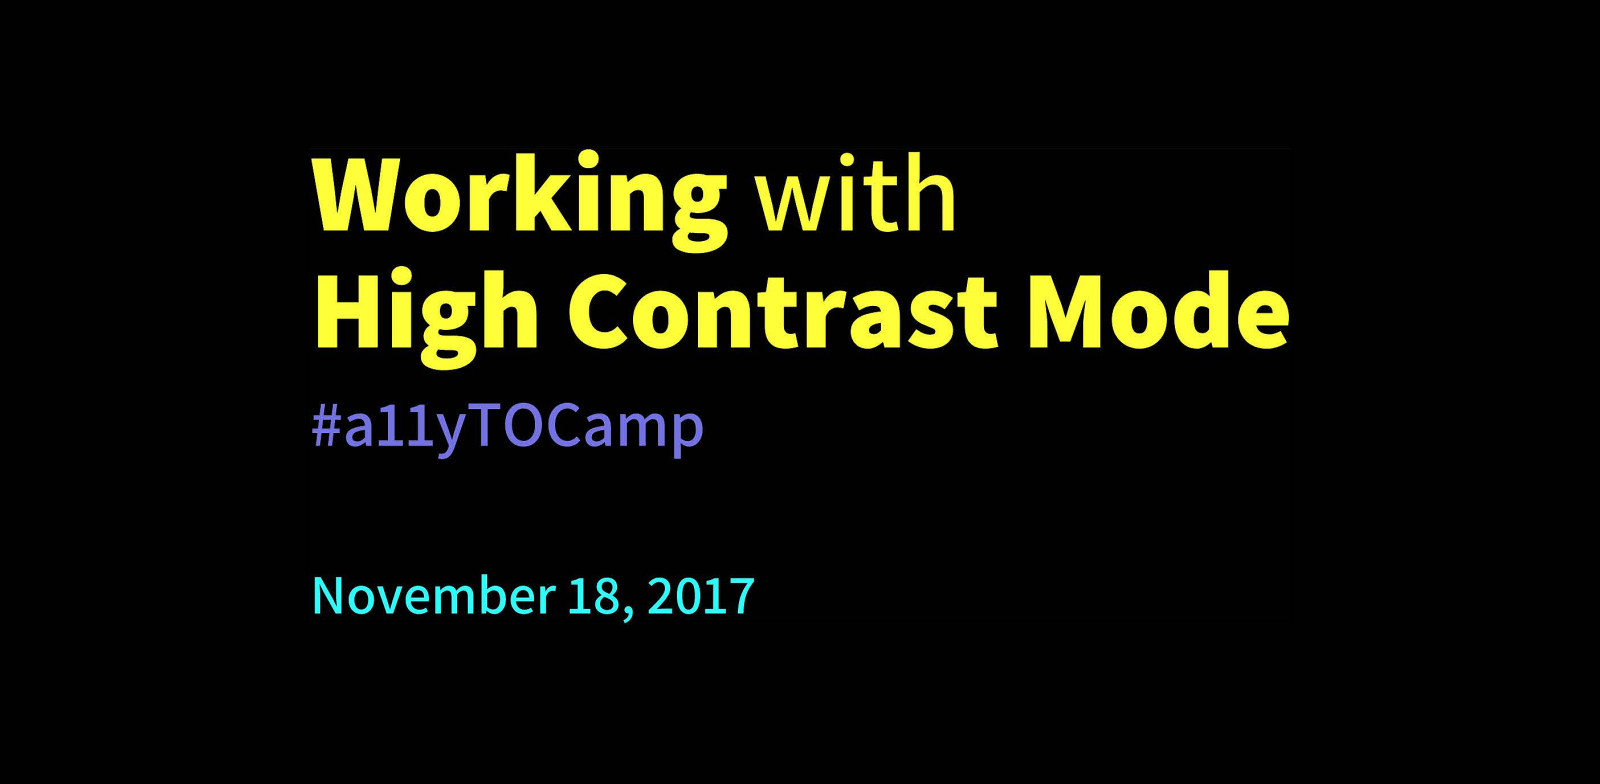 Working with High Contrast Mode